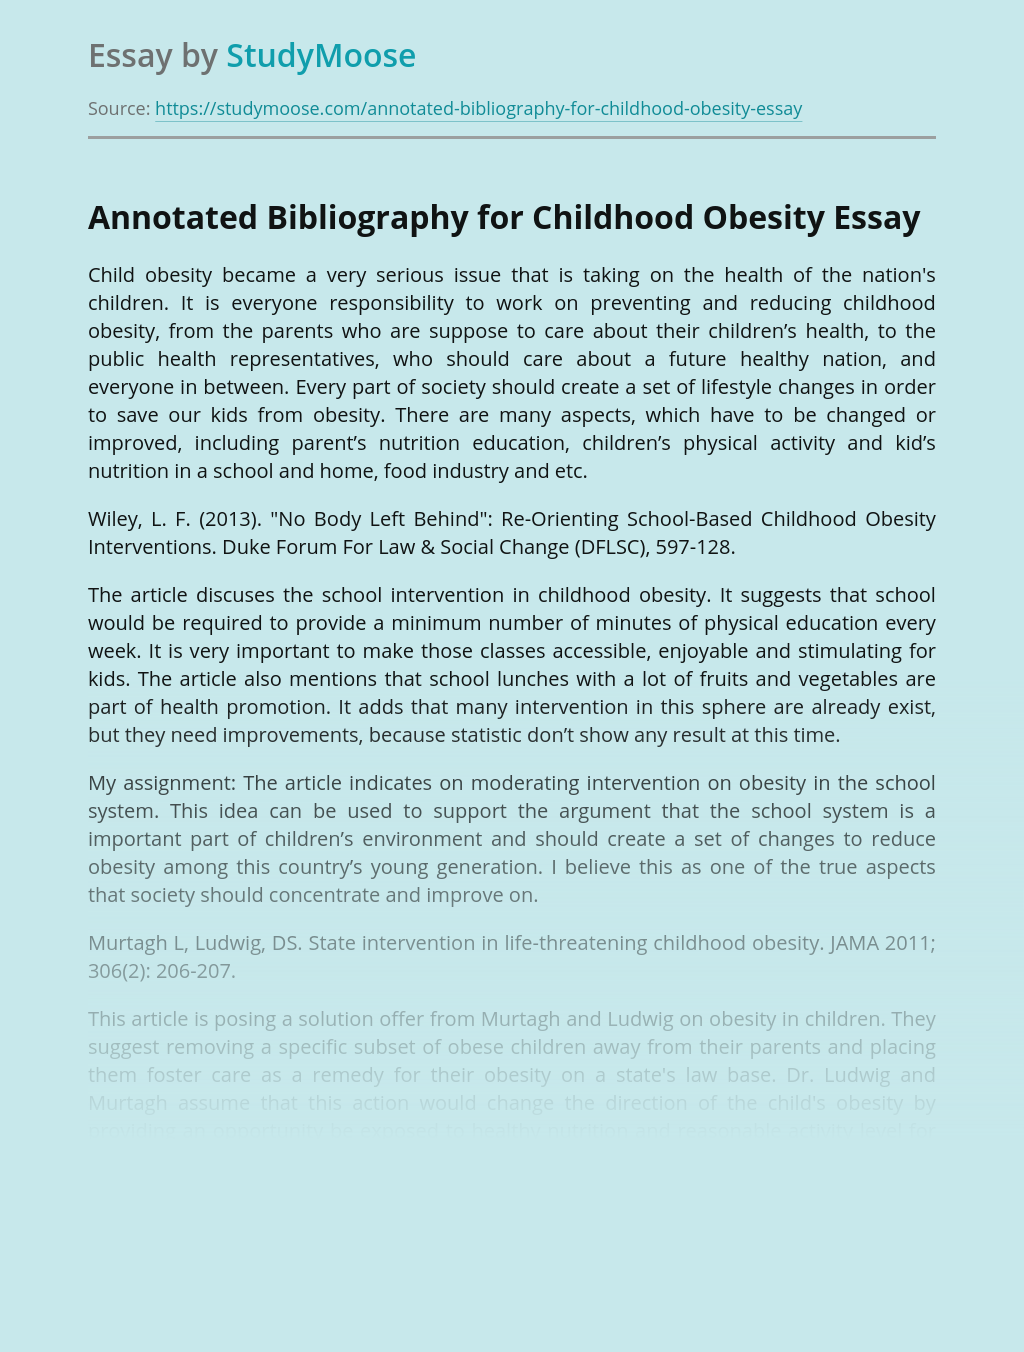 Annotated Bibliography for Childhood Obesity